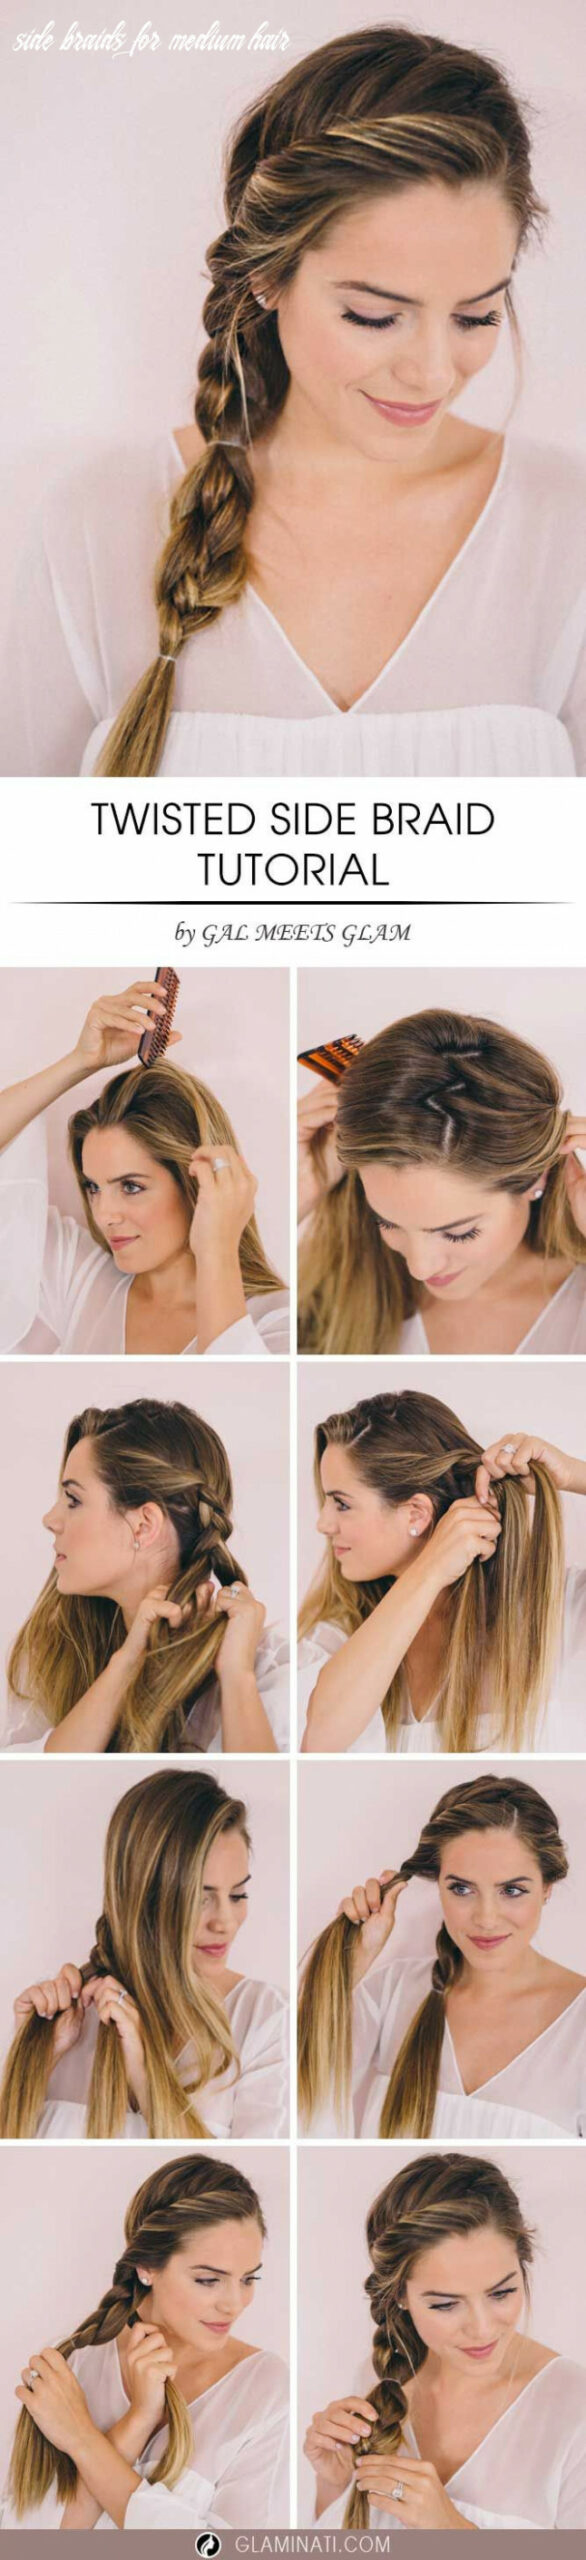 Twisted side braid for various occasions | long hair styles